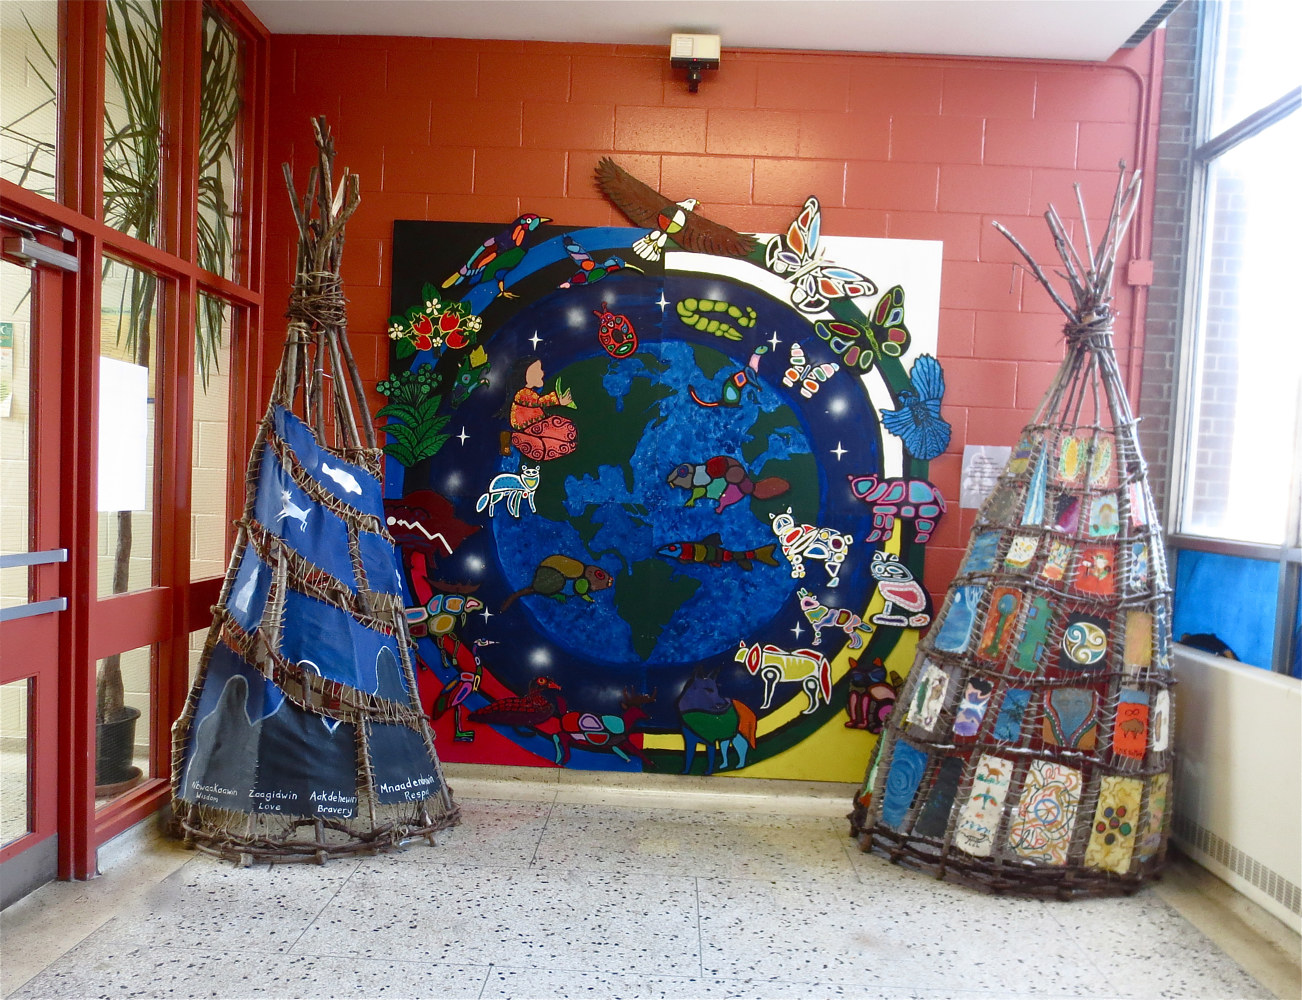 Tipi Teaching Project - Wisdom, Weaving and Stories - Display at First Nations School of Toronto by Pamela Schuller